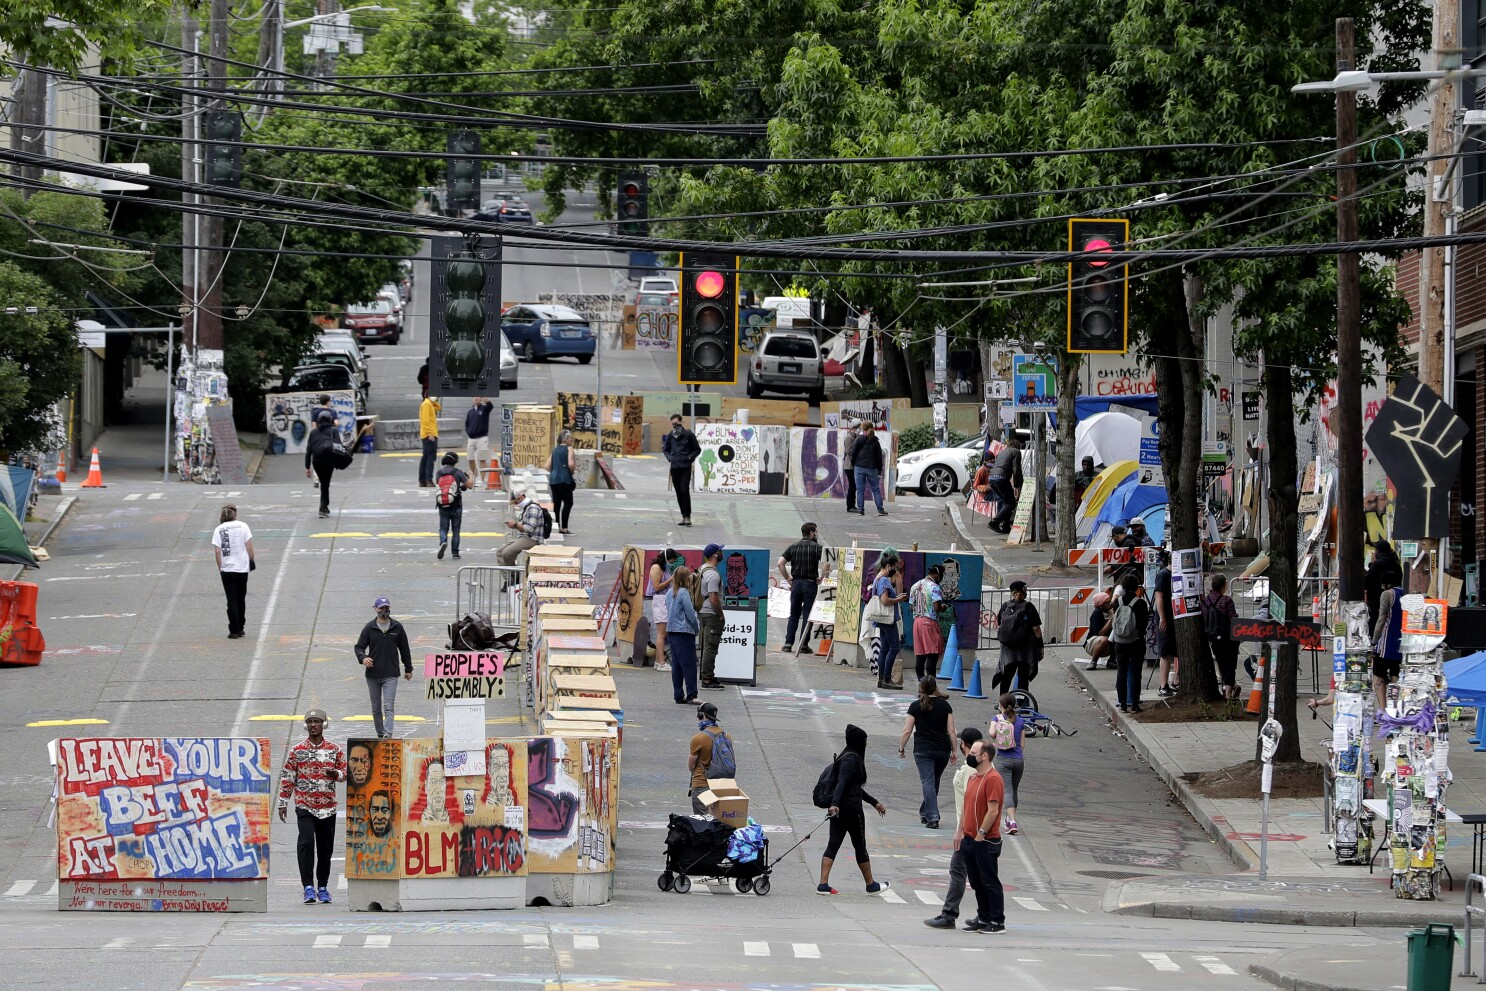 Dismantling Seattle S Police Free Zone Likely To Take Time Los Angeles Times